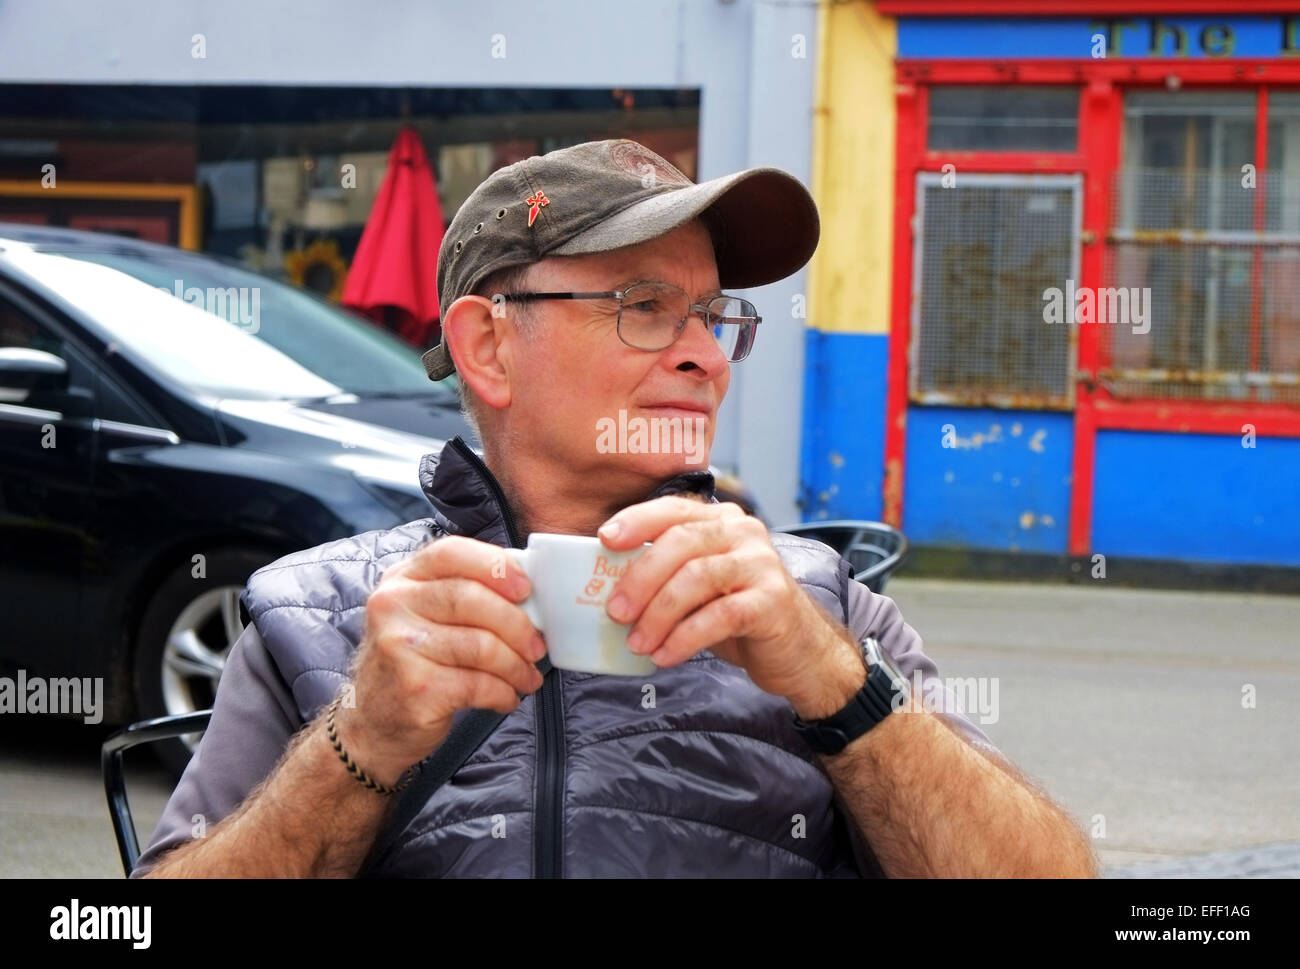 Middle aged man enjoys a coffee in an outdoor cafe wine bar in west Cork Ireland - Stock Image